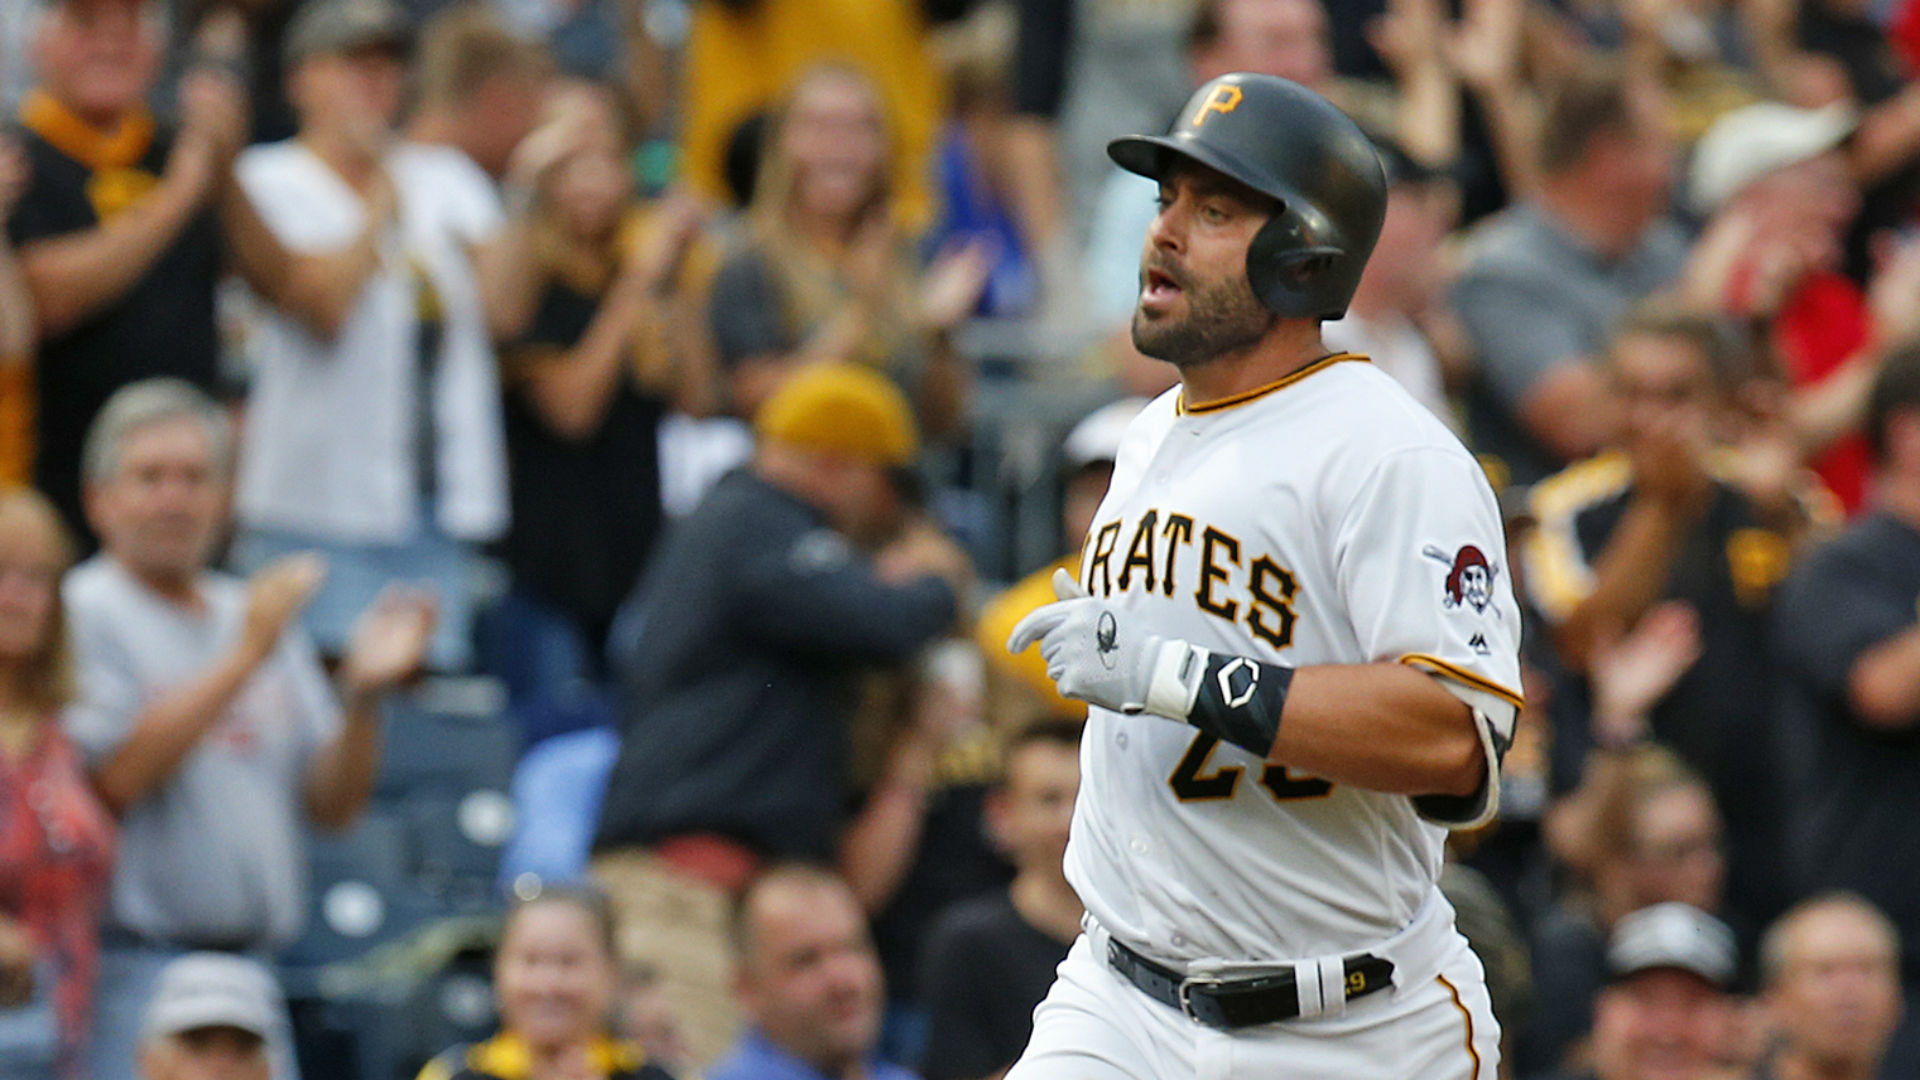 Cervelli has played in just 34 games this season after suffering the sixth concussion of his career in May.